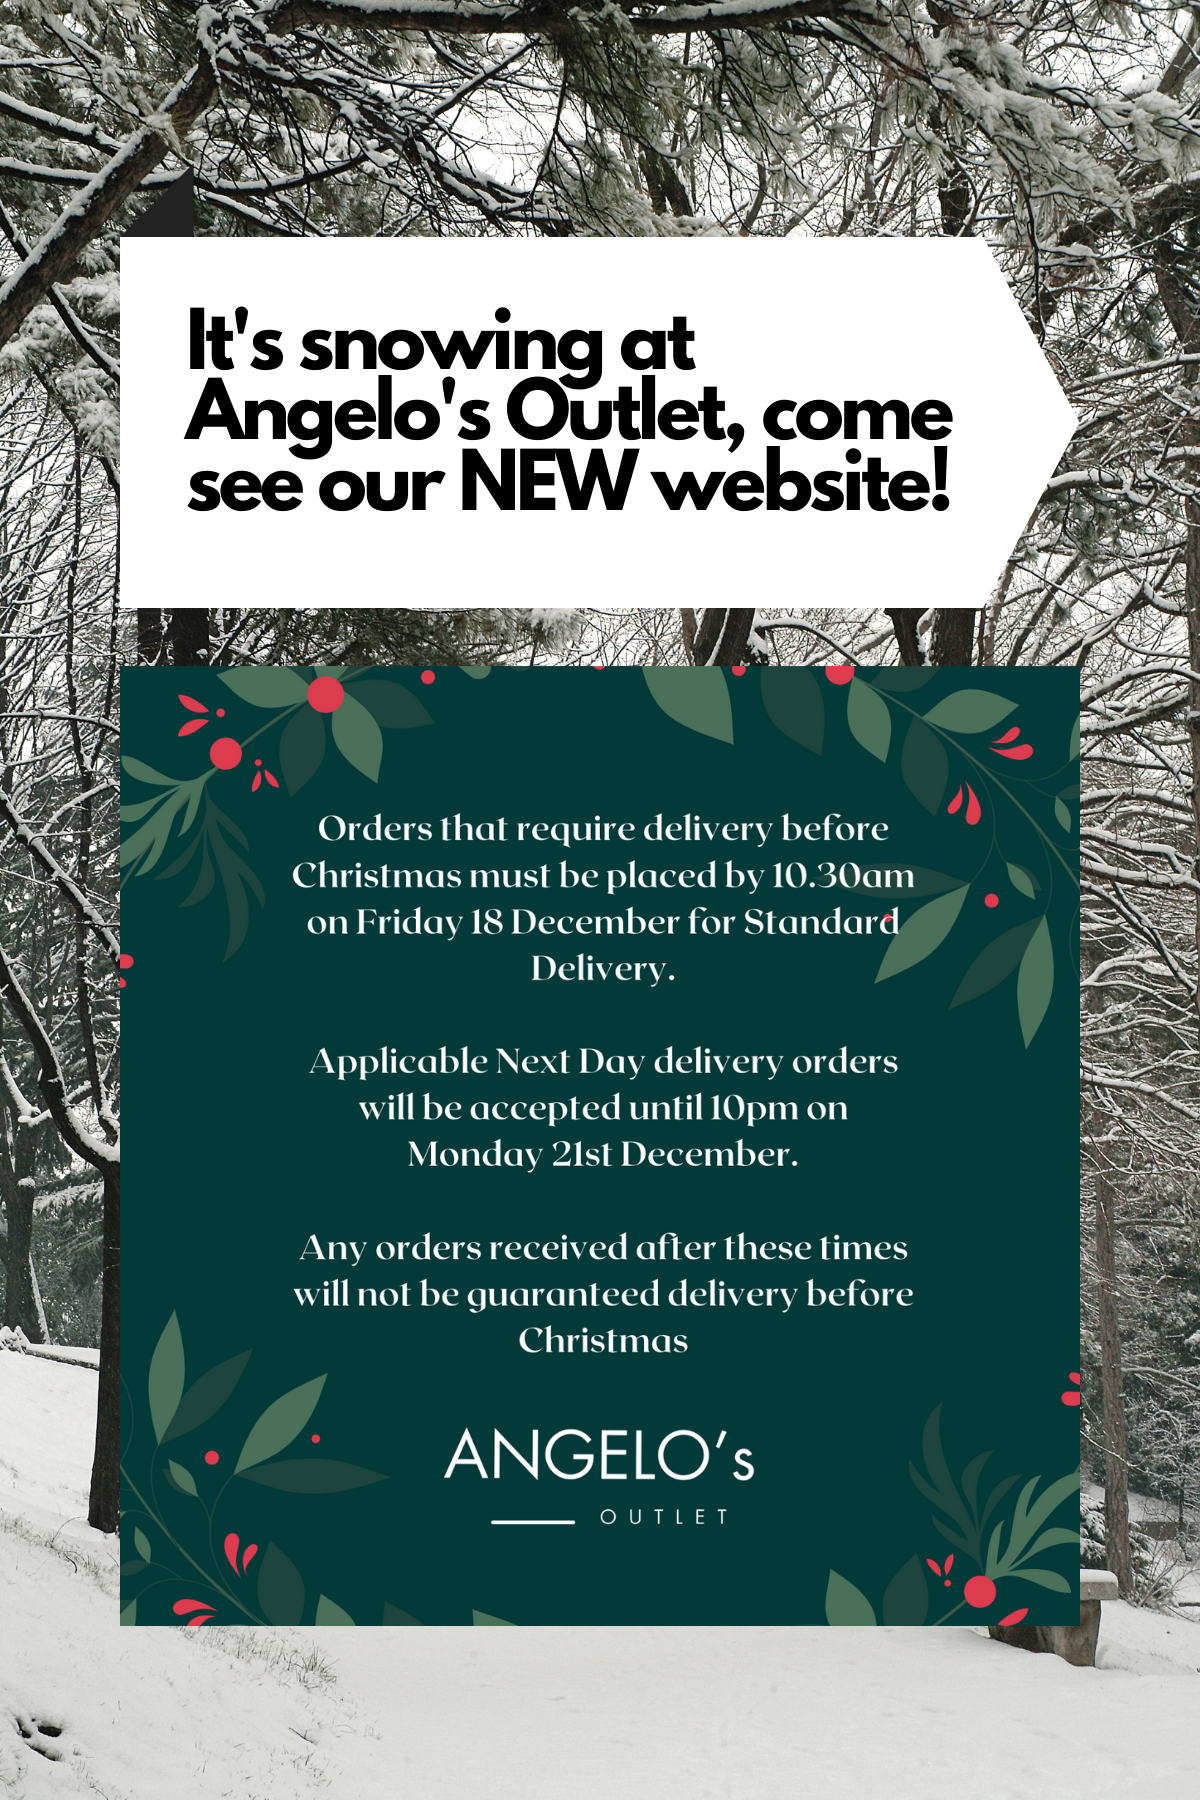 Information on Christmas Delivery and asking readers to check out the snowfall effect on the website